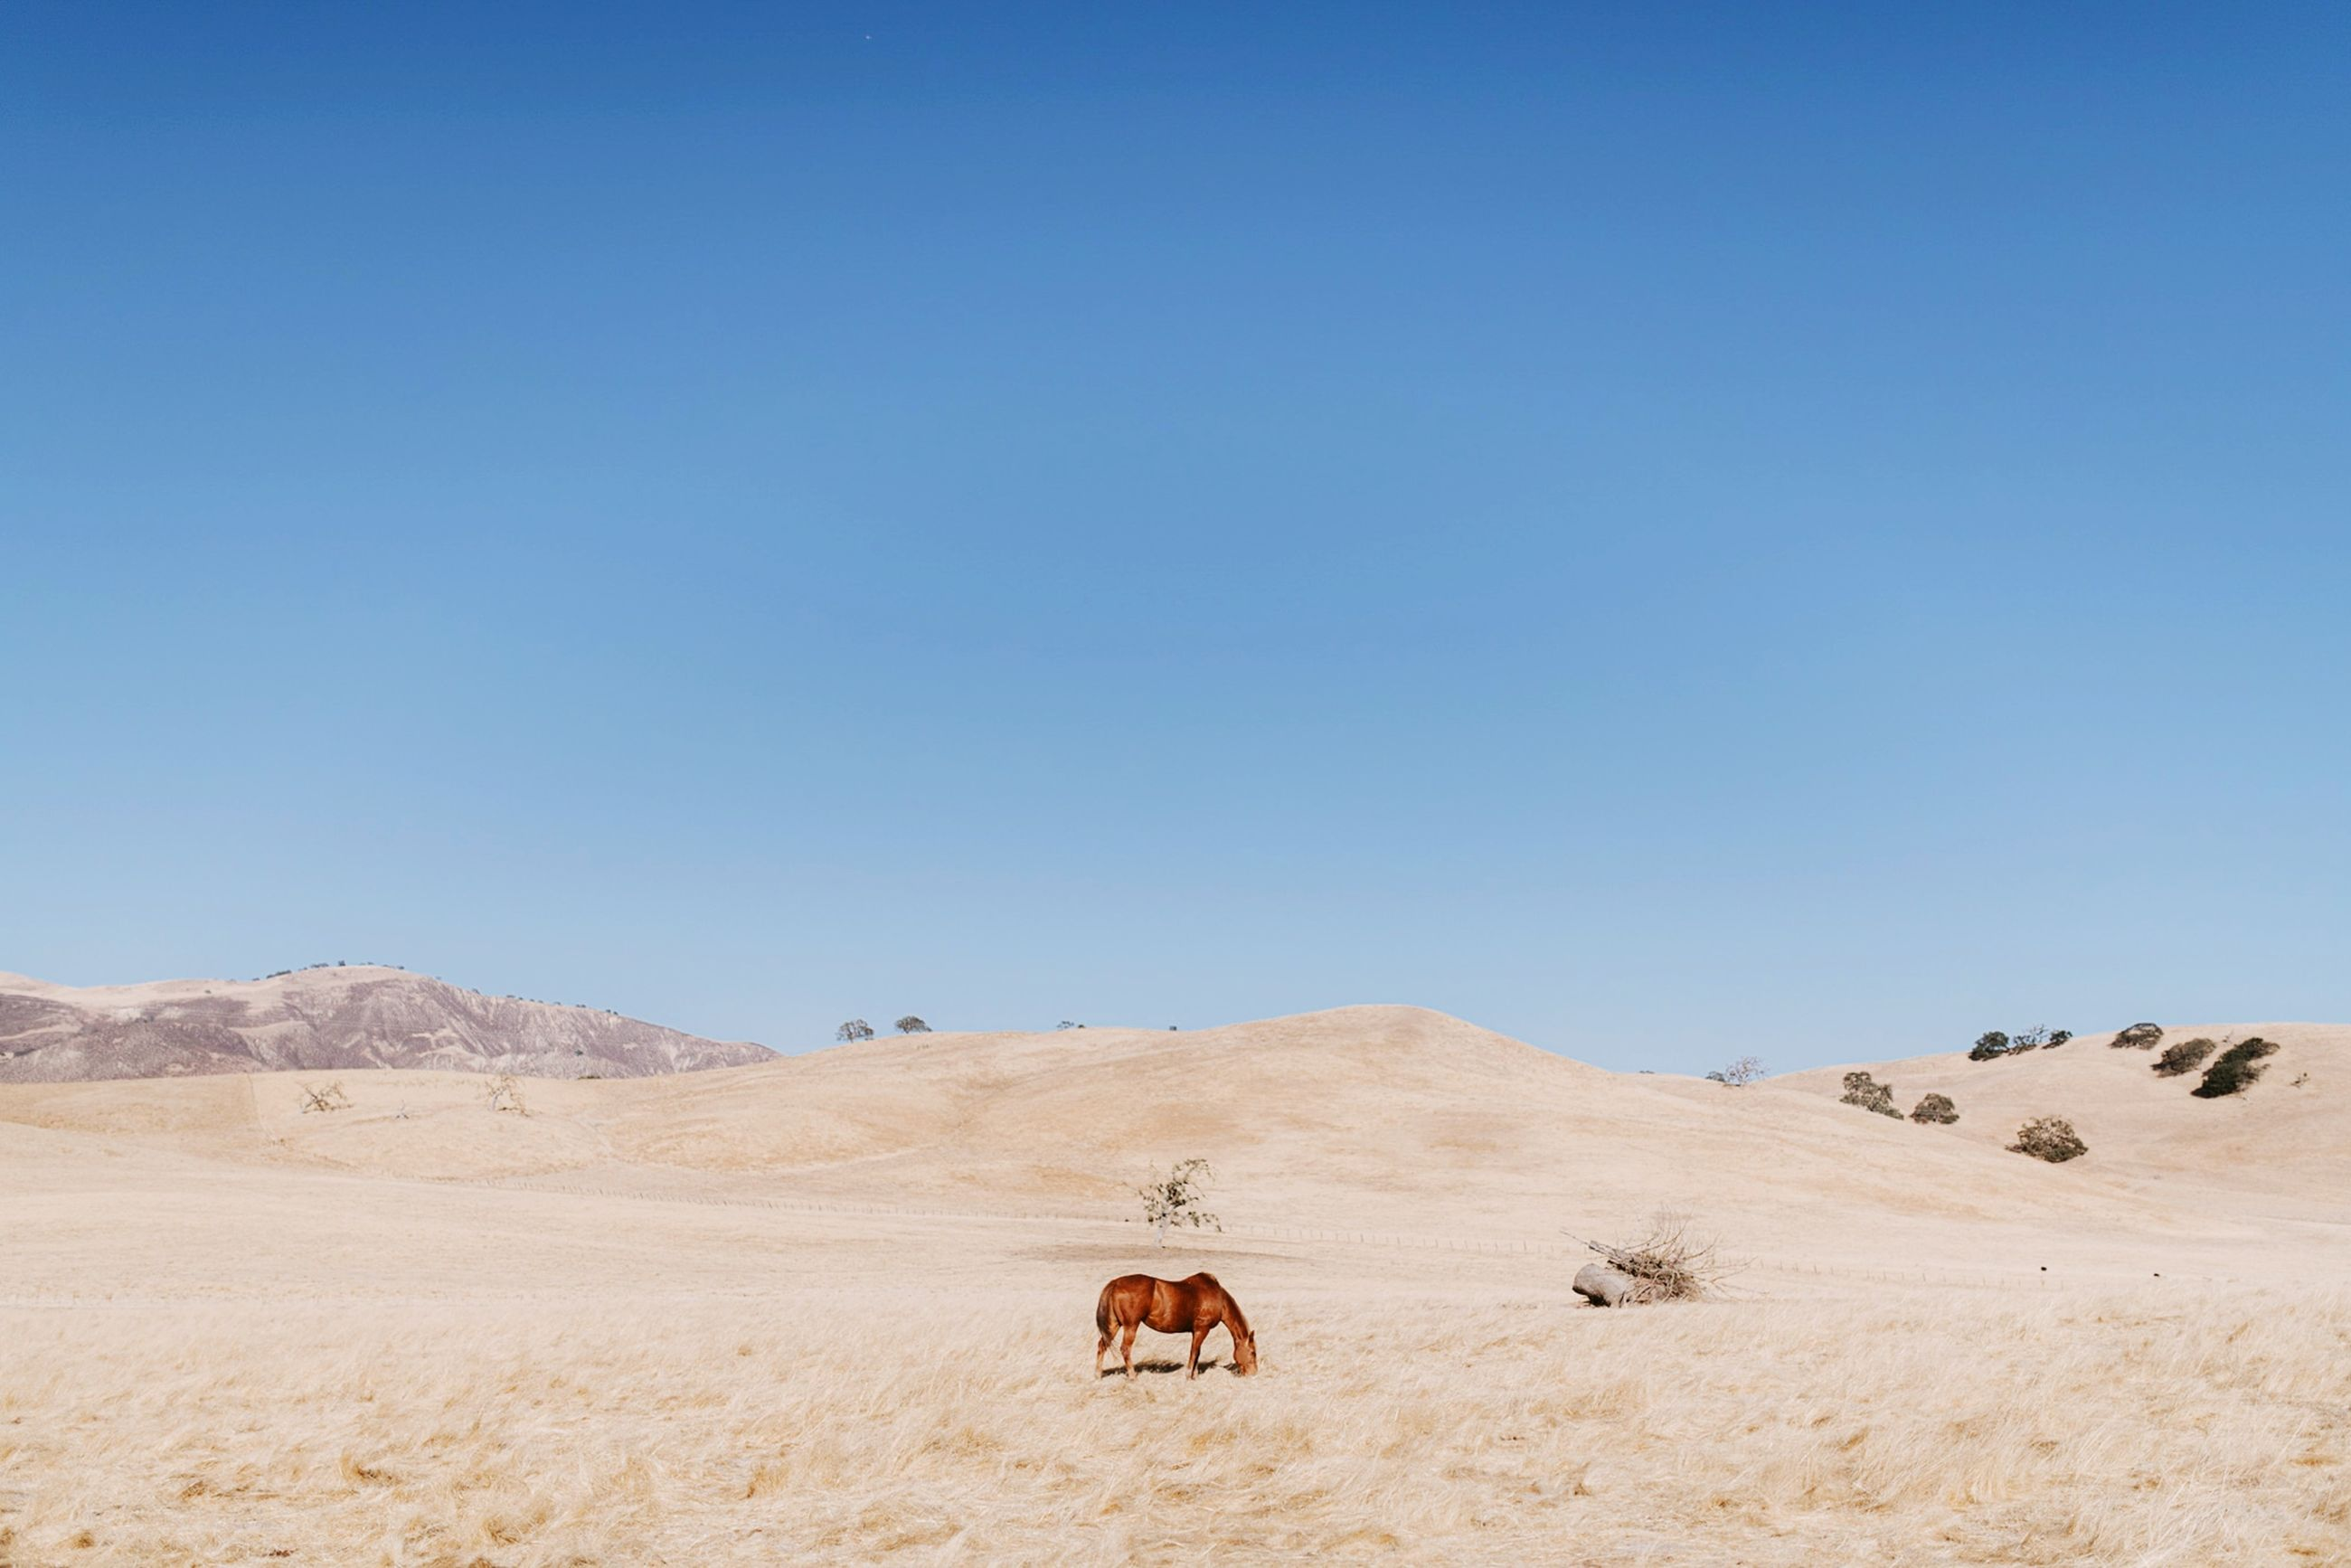 landscape, mammal, animal, animal themes, land, environment, sky, desert, clear sky, domestic animals, scenics - nature, copy space, nature, vertebrate, domestic, livestock, day, animal wildlife, pets, beauty in nature, no people, herbivorous, arid climate, outdoors, climate